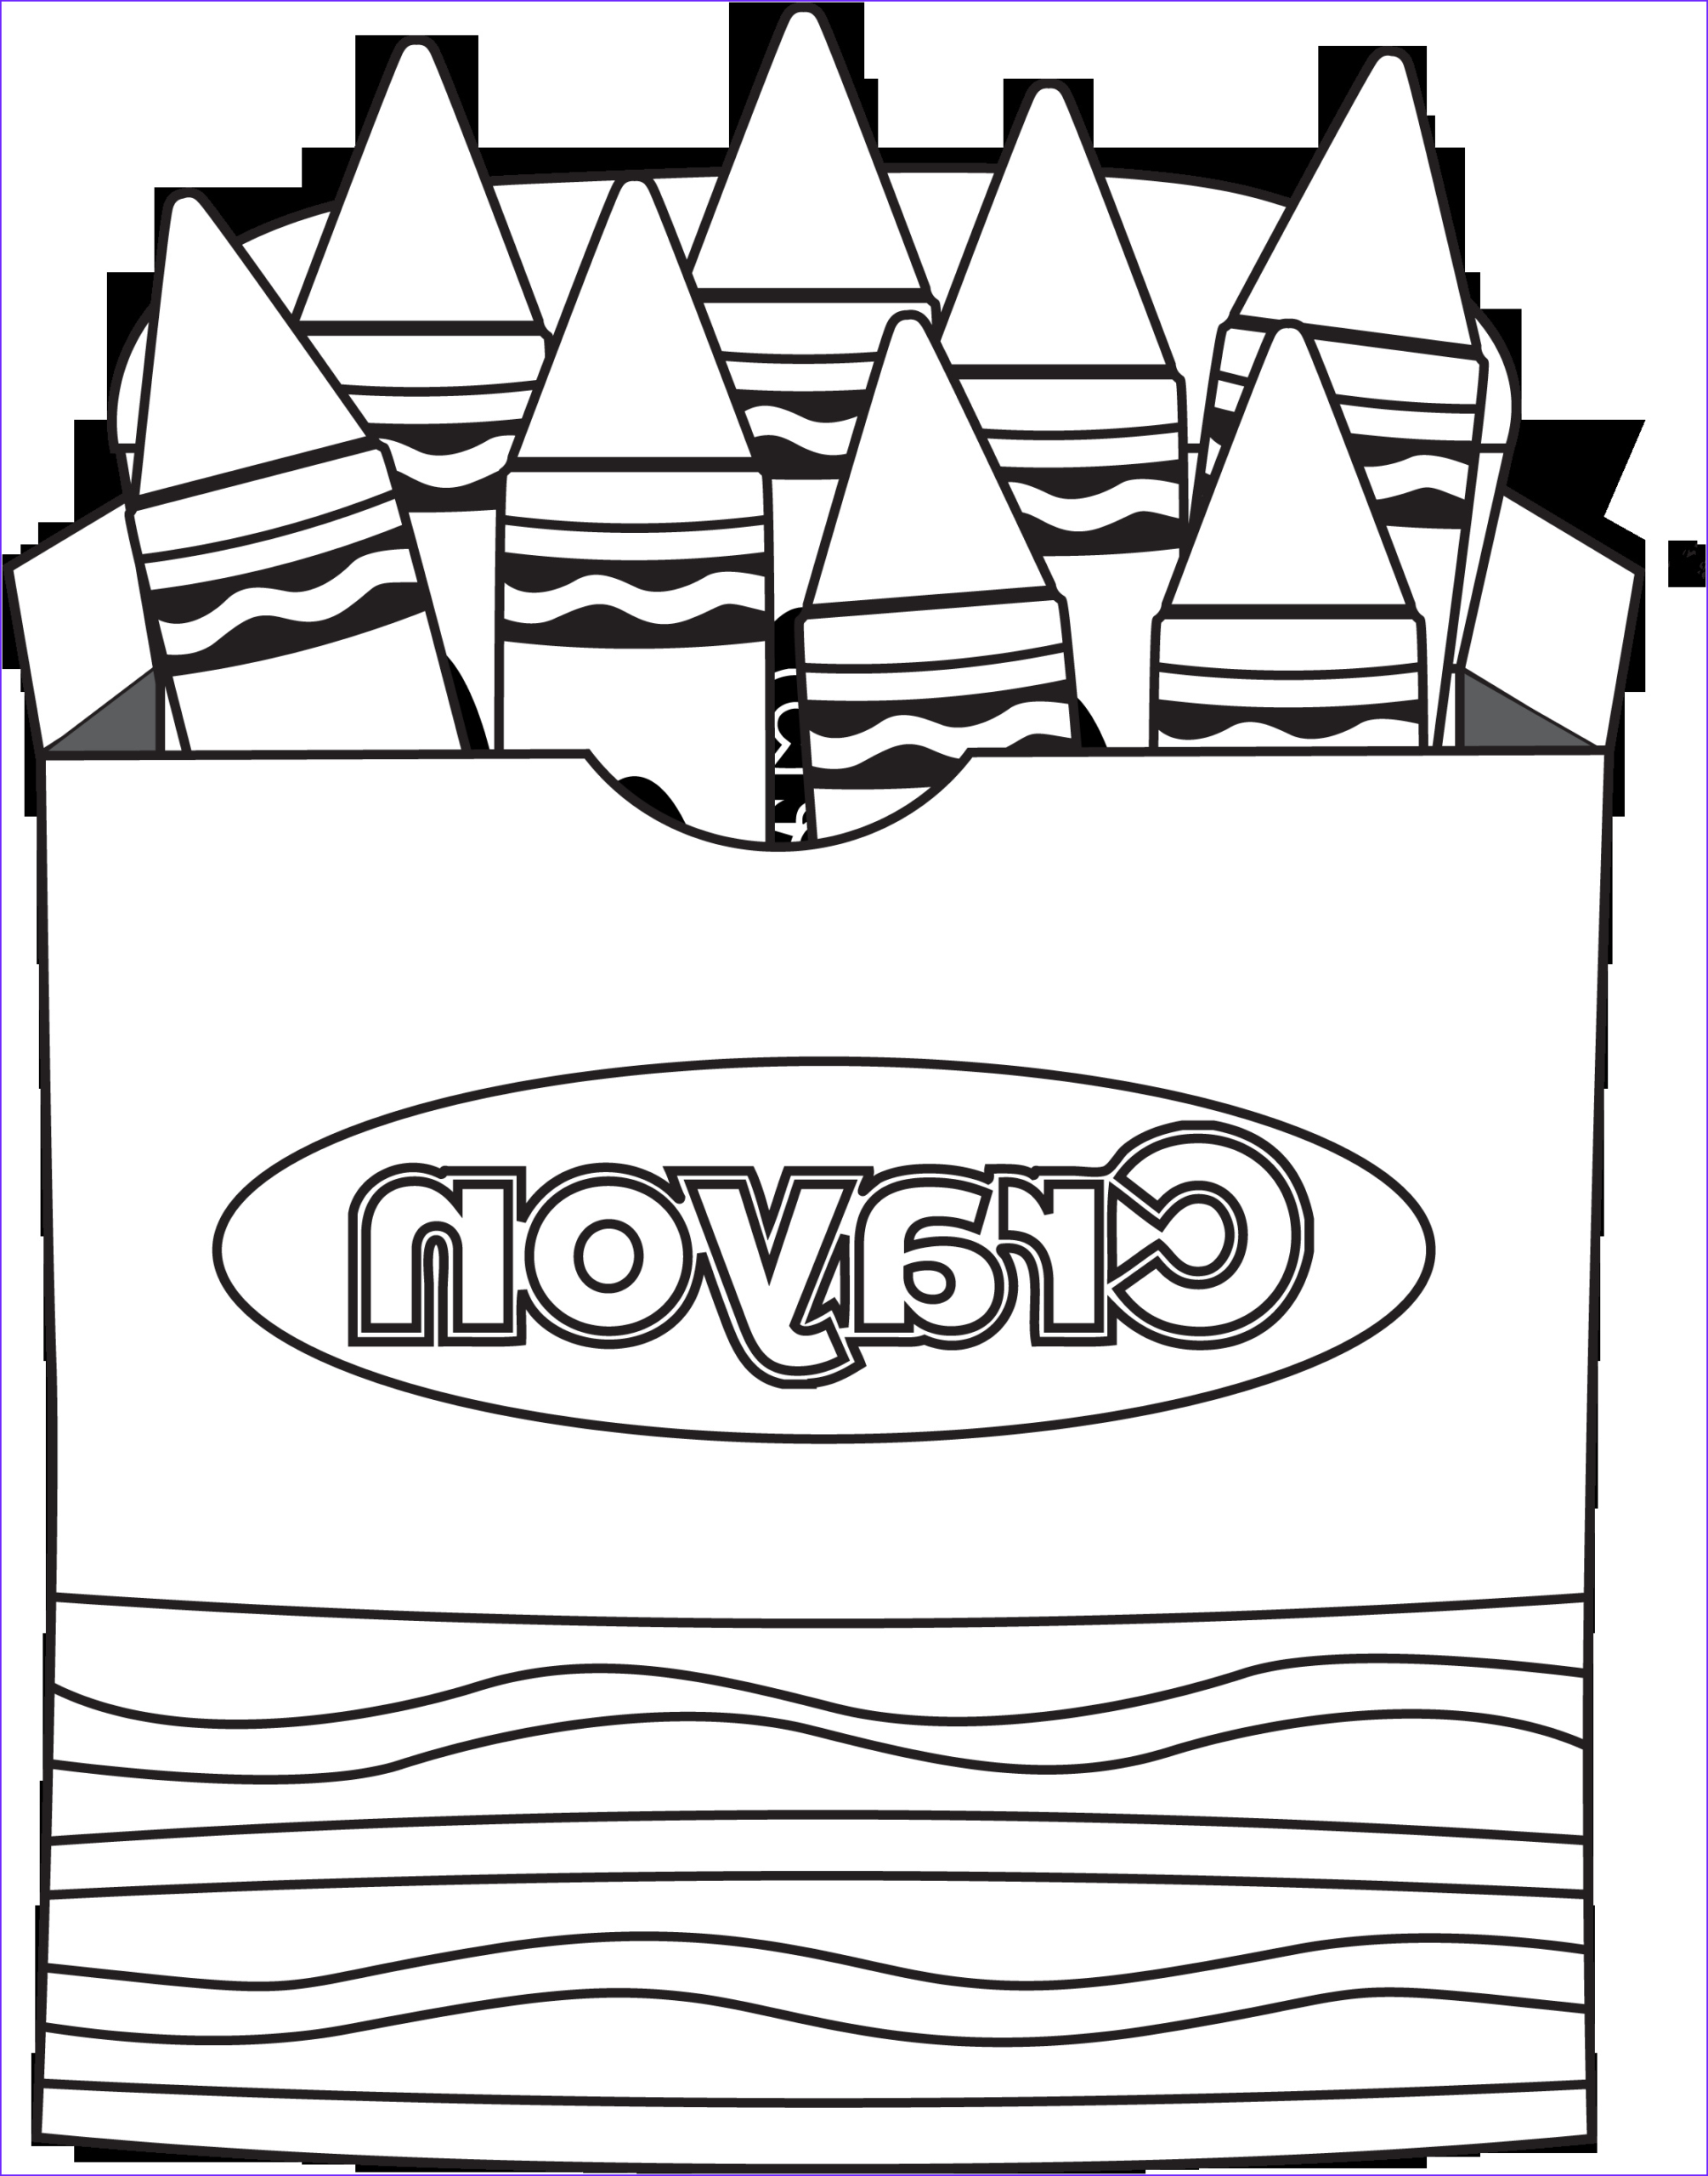 The Day the Crayons Quit Coloring Page Elegant Gallery the Day the Crayons Quit Coloring Page Coloring Home